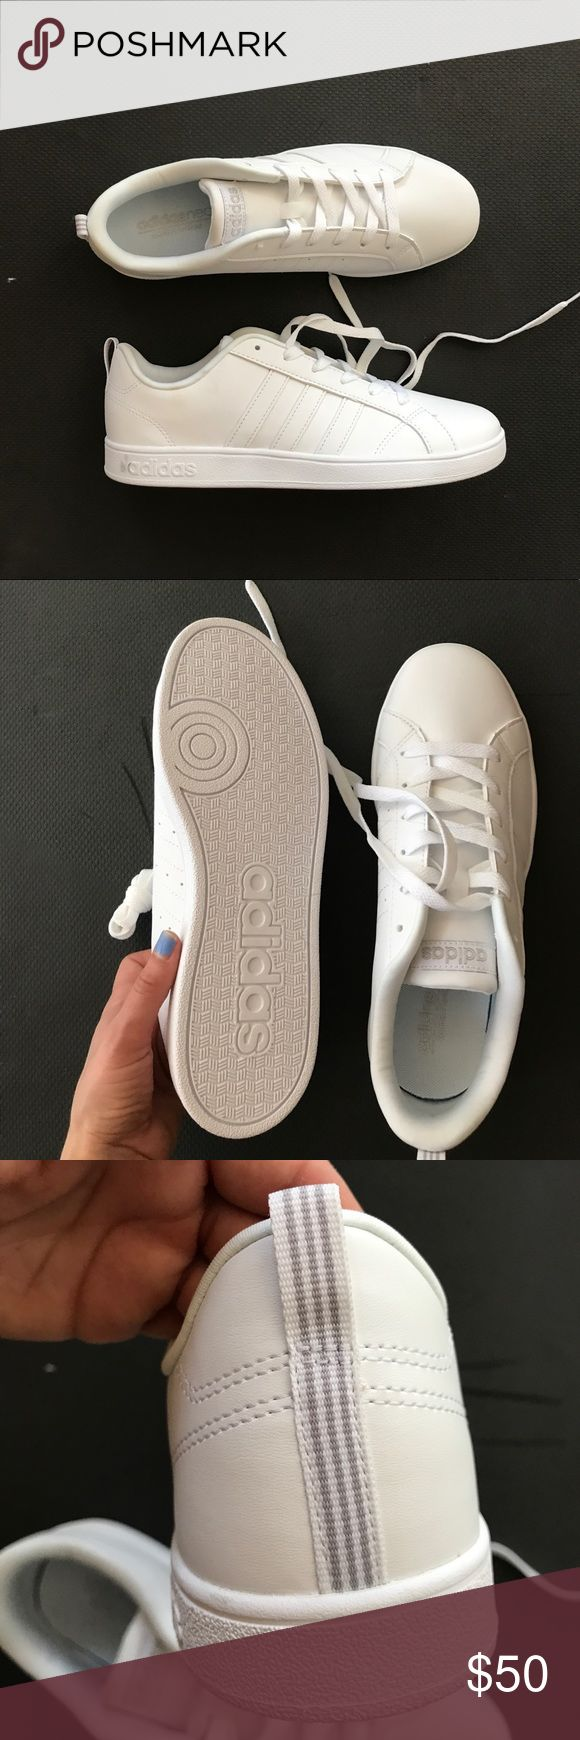 Adidas neo comfort white CLASSIC NEW A brand New pair of classics white on white and never worn, it's too big for me. They fit more like a size 7 womens adidas Shoes Sneakers